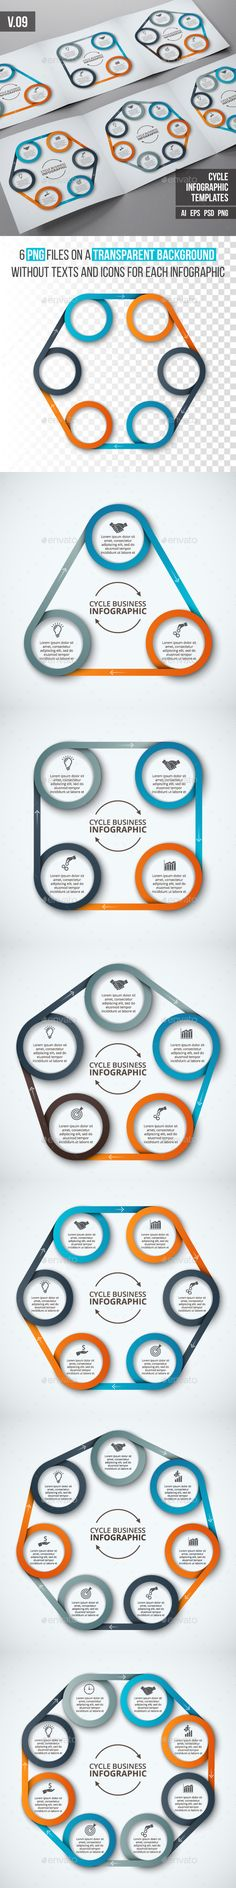 Vector elements for infographic. Template for cycle diagram, graph, presentation and chart. Business concept with 3, 4, 5, 6, 7 and 8 options, parts, steps or processes. Data visualization.